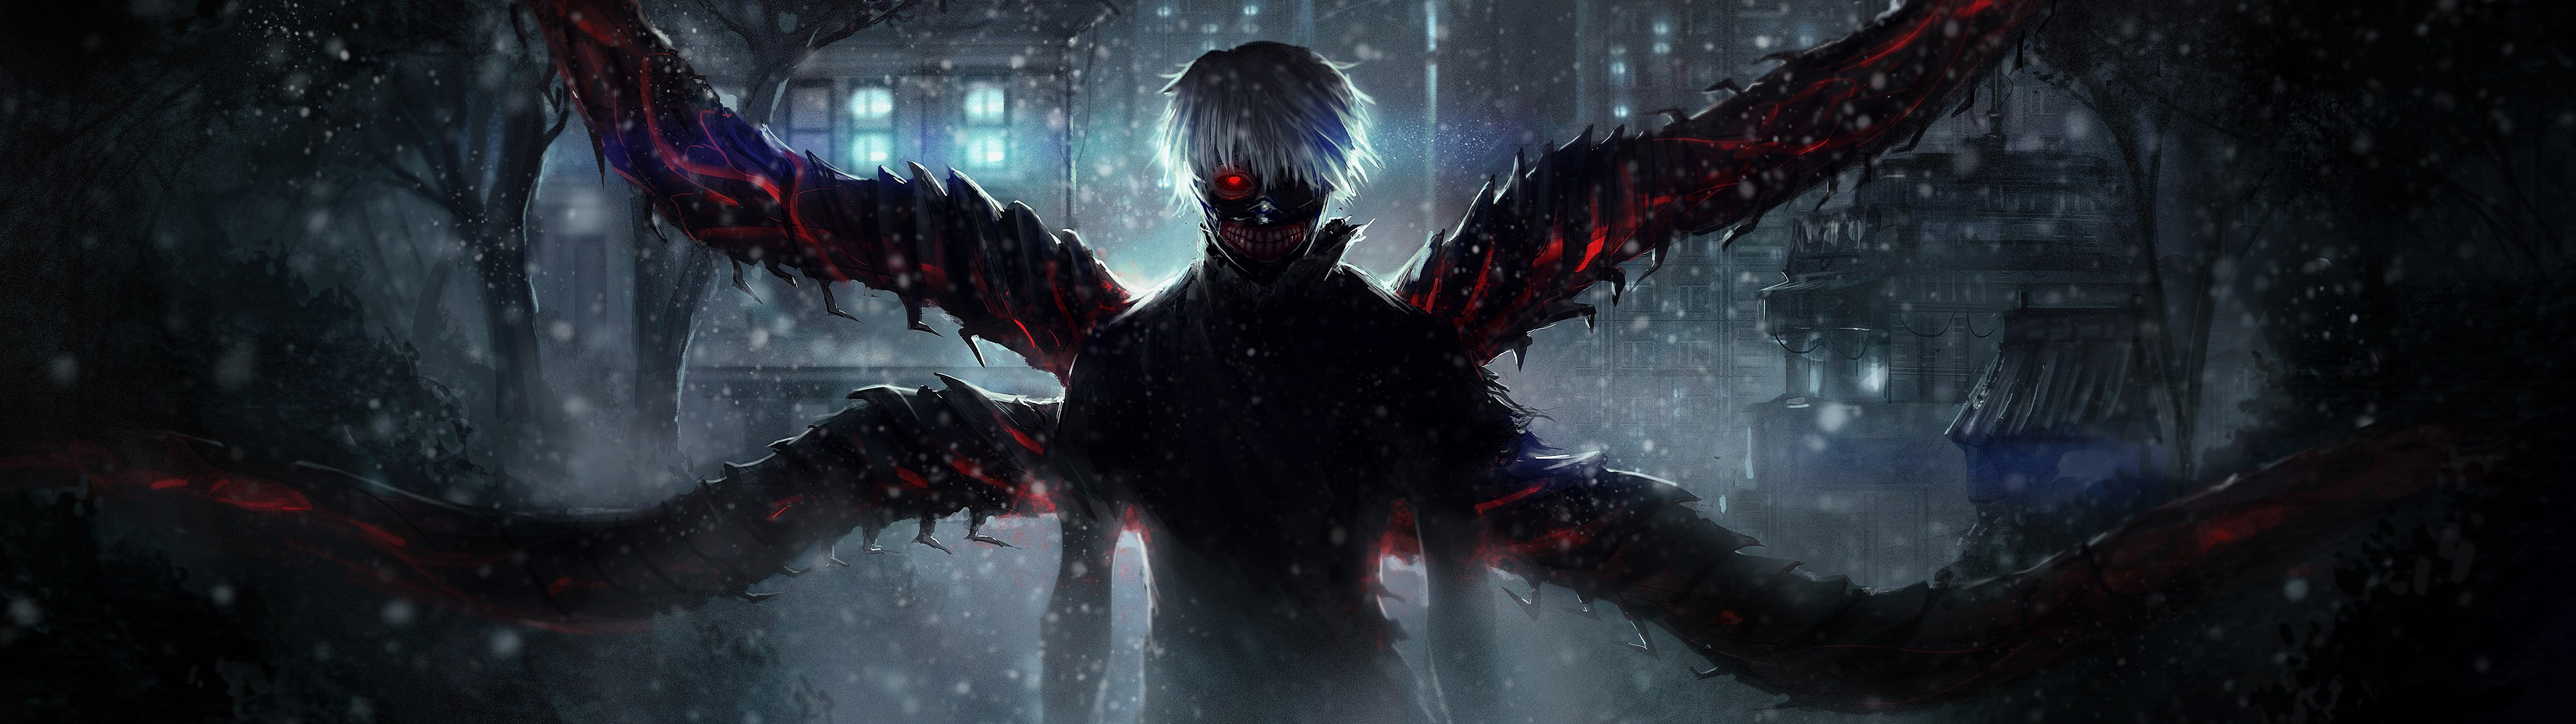 Dual monitor wallpaper anime download free awesome for Screen ecran